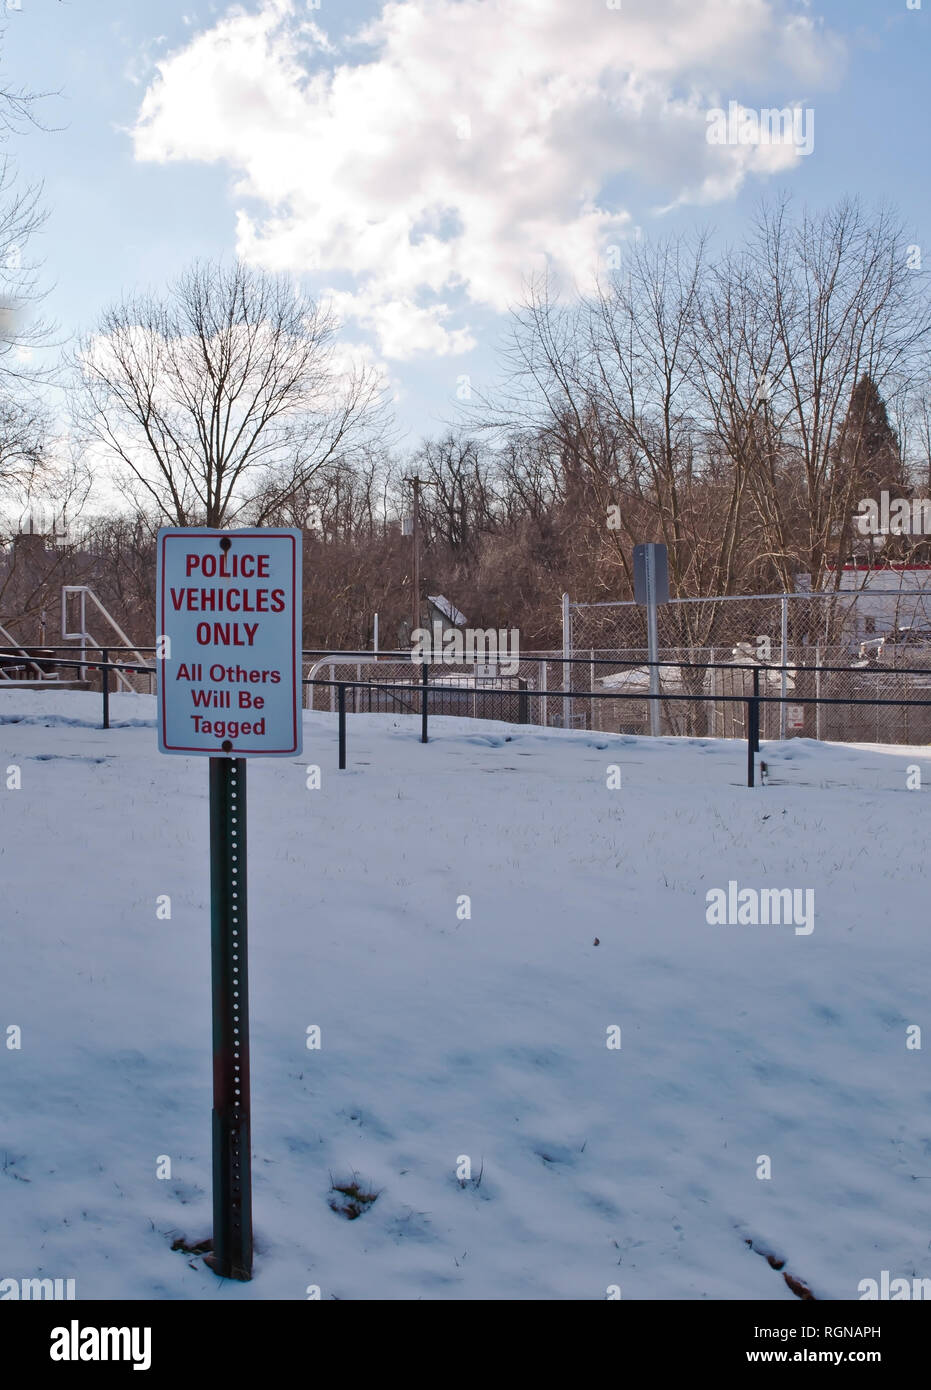 Police only parking sign in winter at the Braddock Hills, Pennsylvania, USA police department - Stock Image